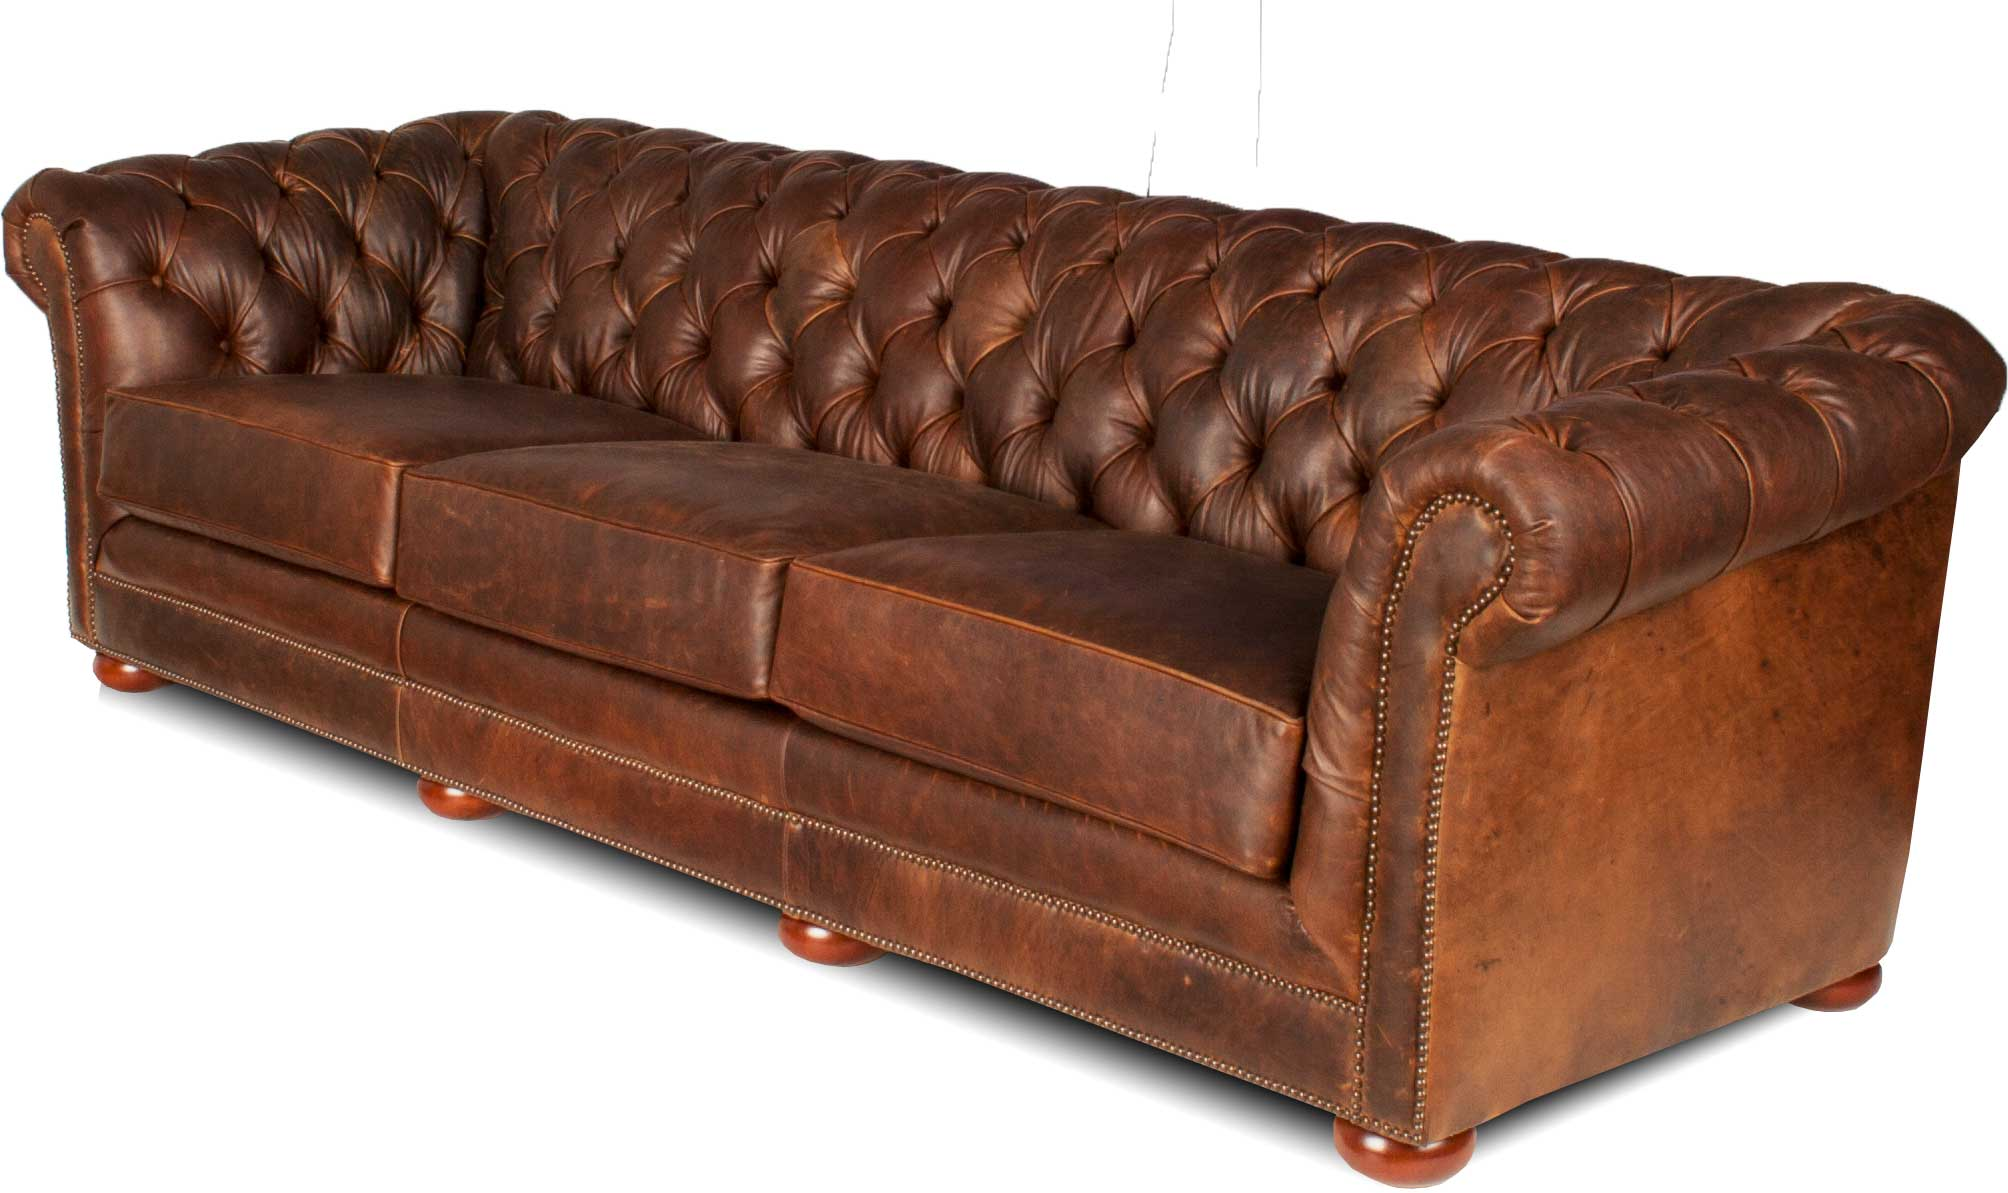 leather couch and chair revolving images executive  furniture